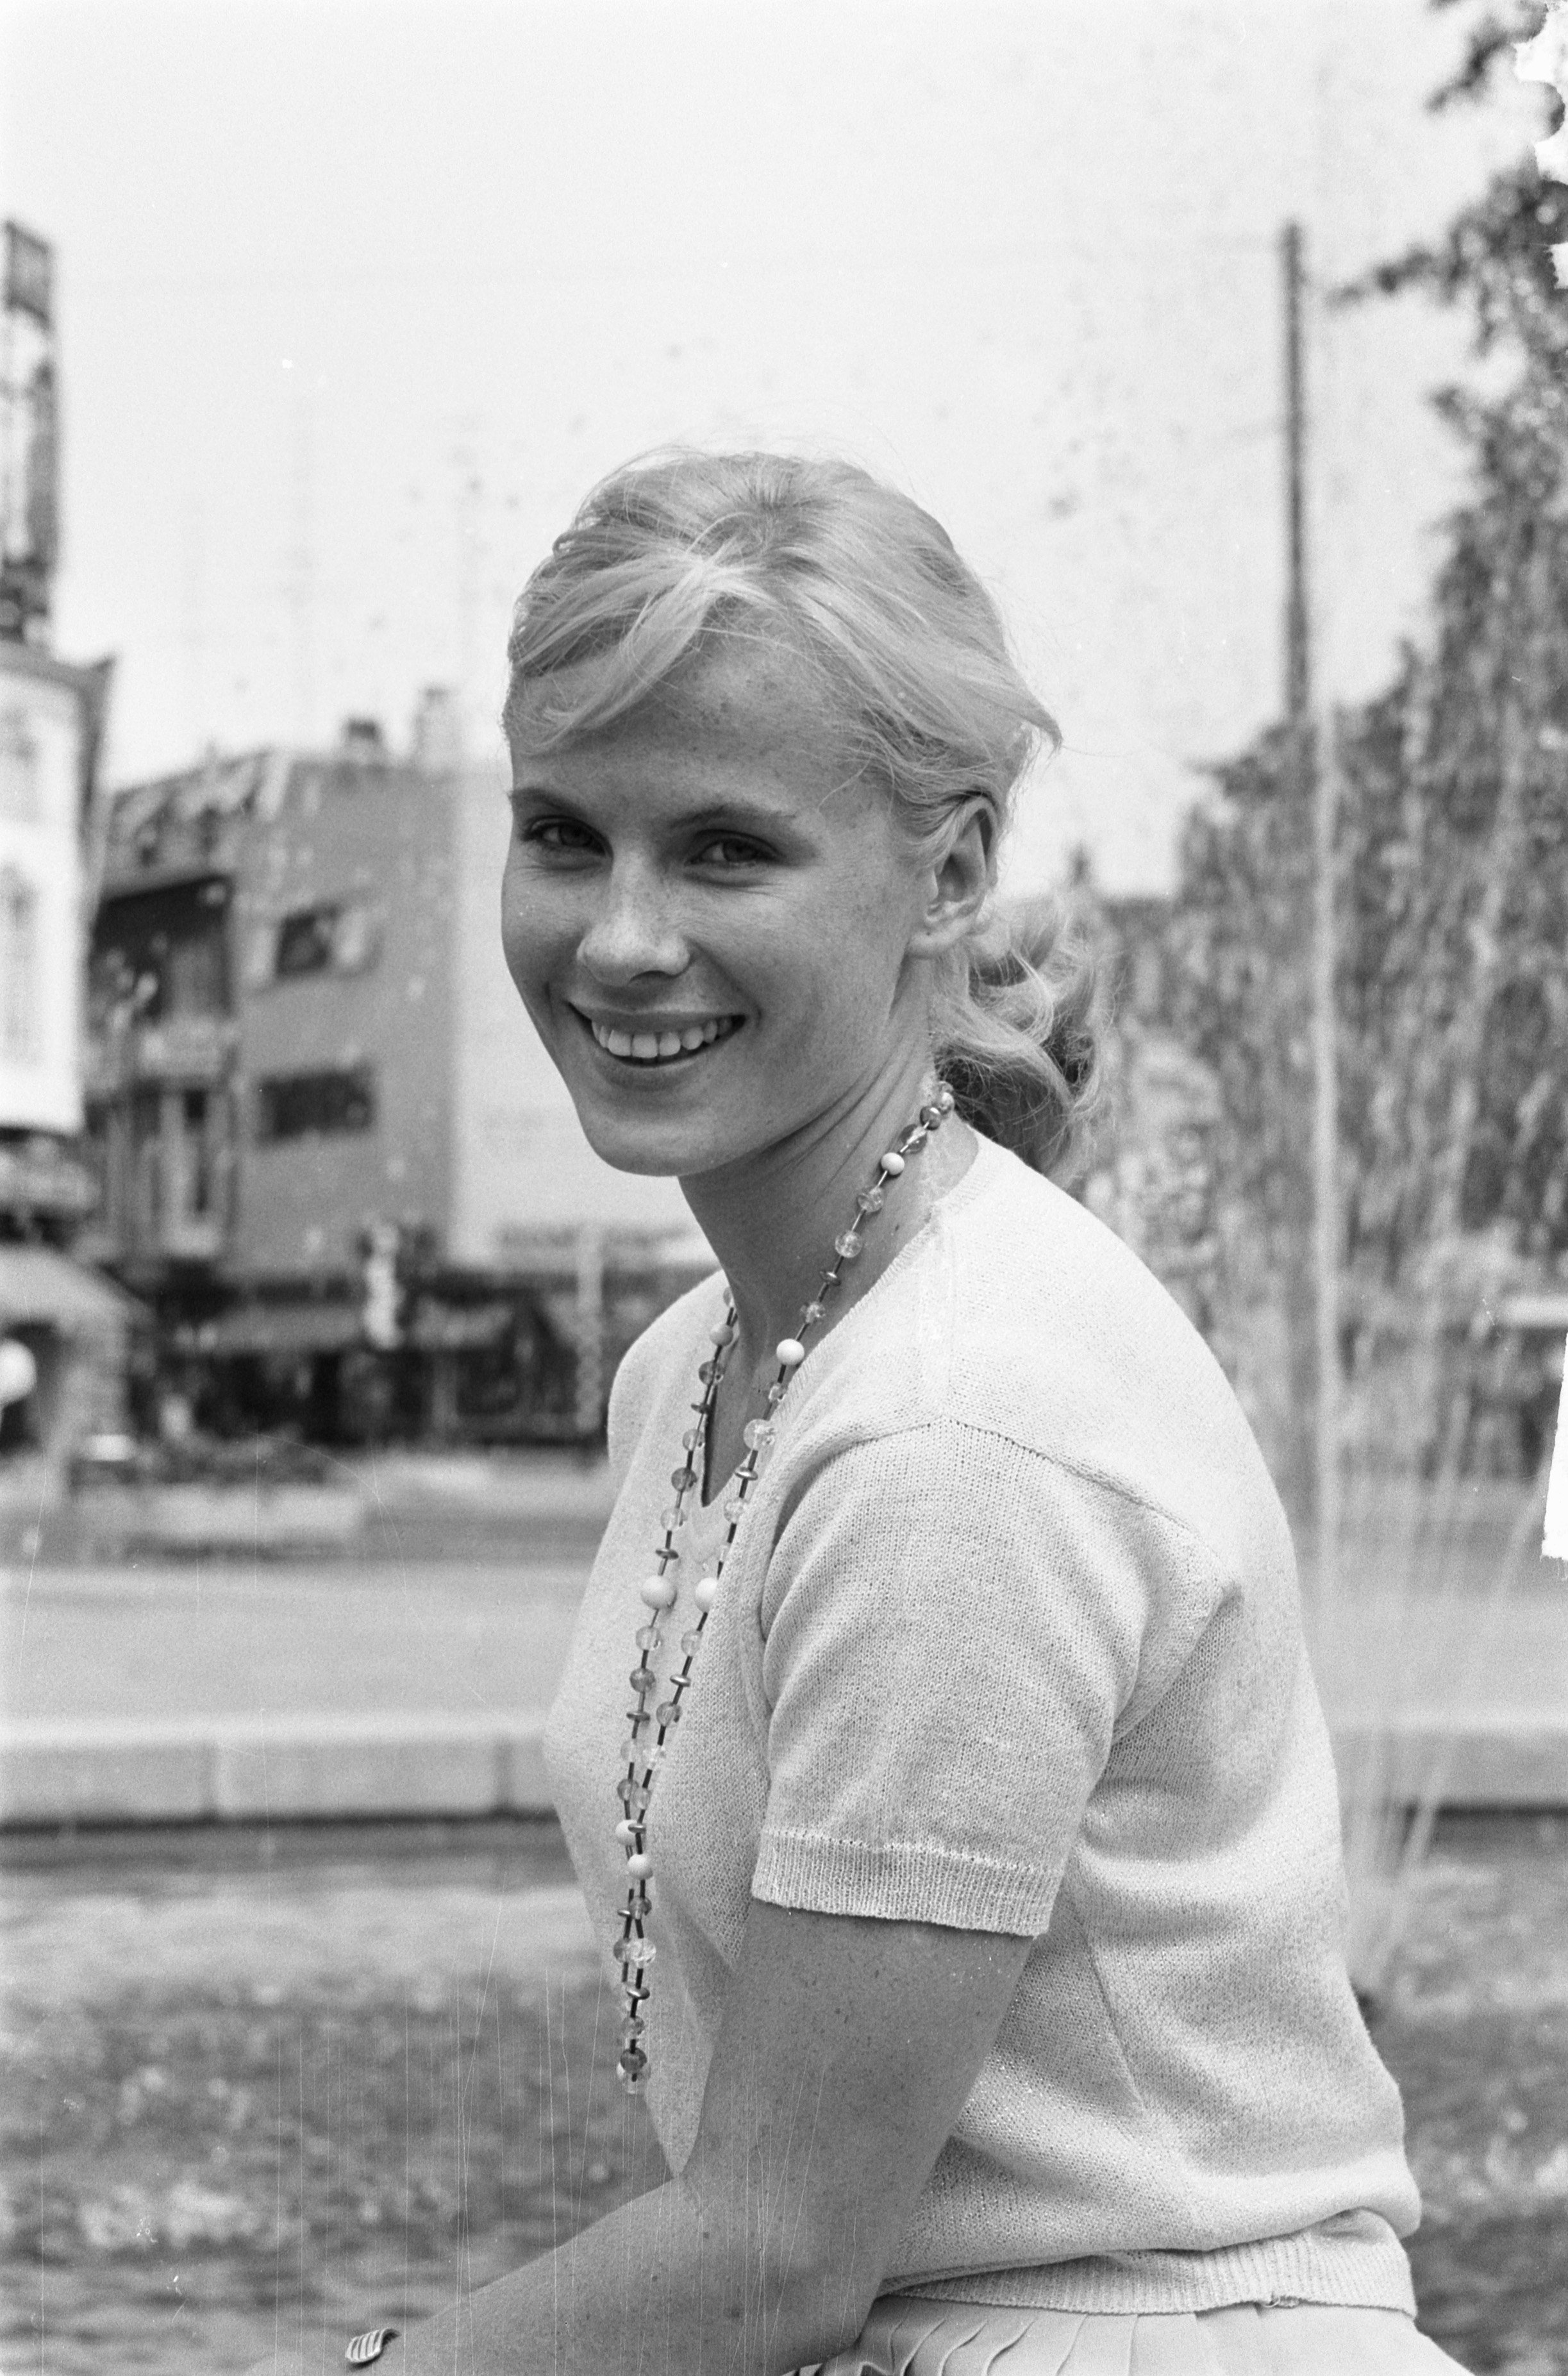 Bibi Andersson. Photo: Harry Pot, 1961. Image source: Nationaal Archief Fotocollectie Anefo (CC-BY-SA 3.0 nl)